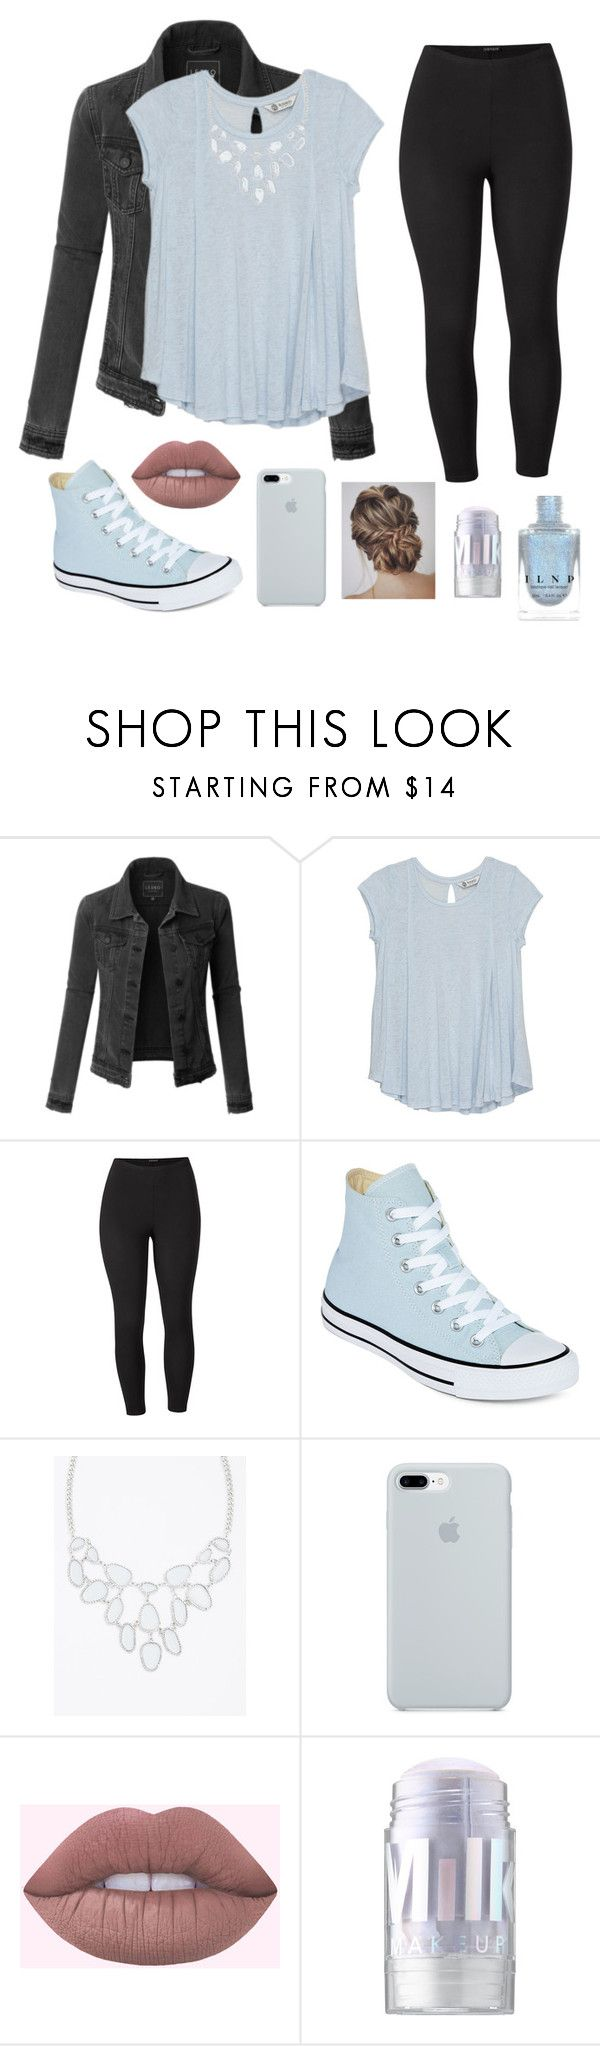 """""""Blue"""" by mollie-brock ❤ liked on Polyvore featuring LE3NO, Bobeau, Venus, Converse, Torrid, ETUÍ, MILK MAKEUP and plus size clothing"""